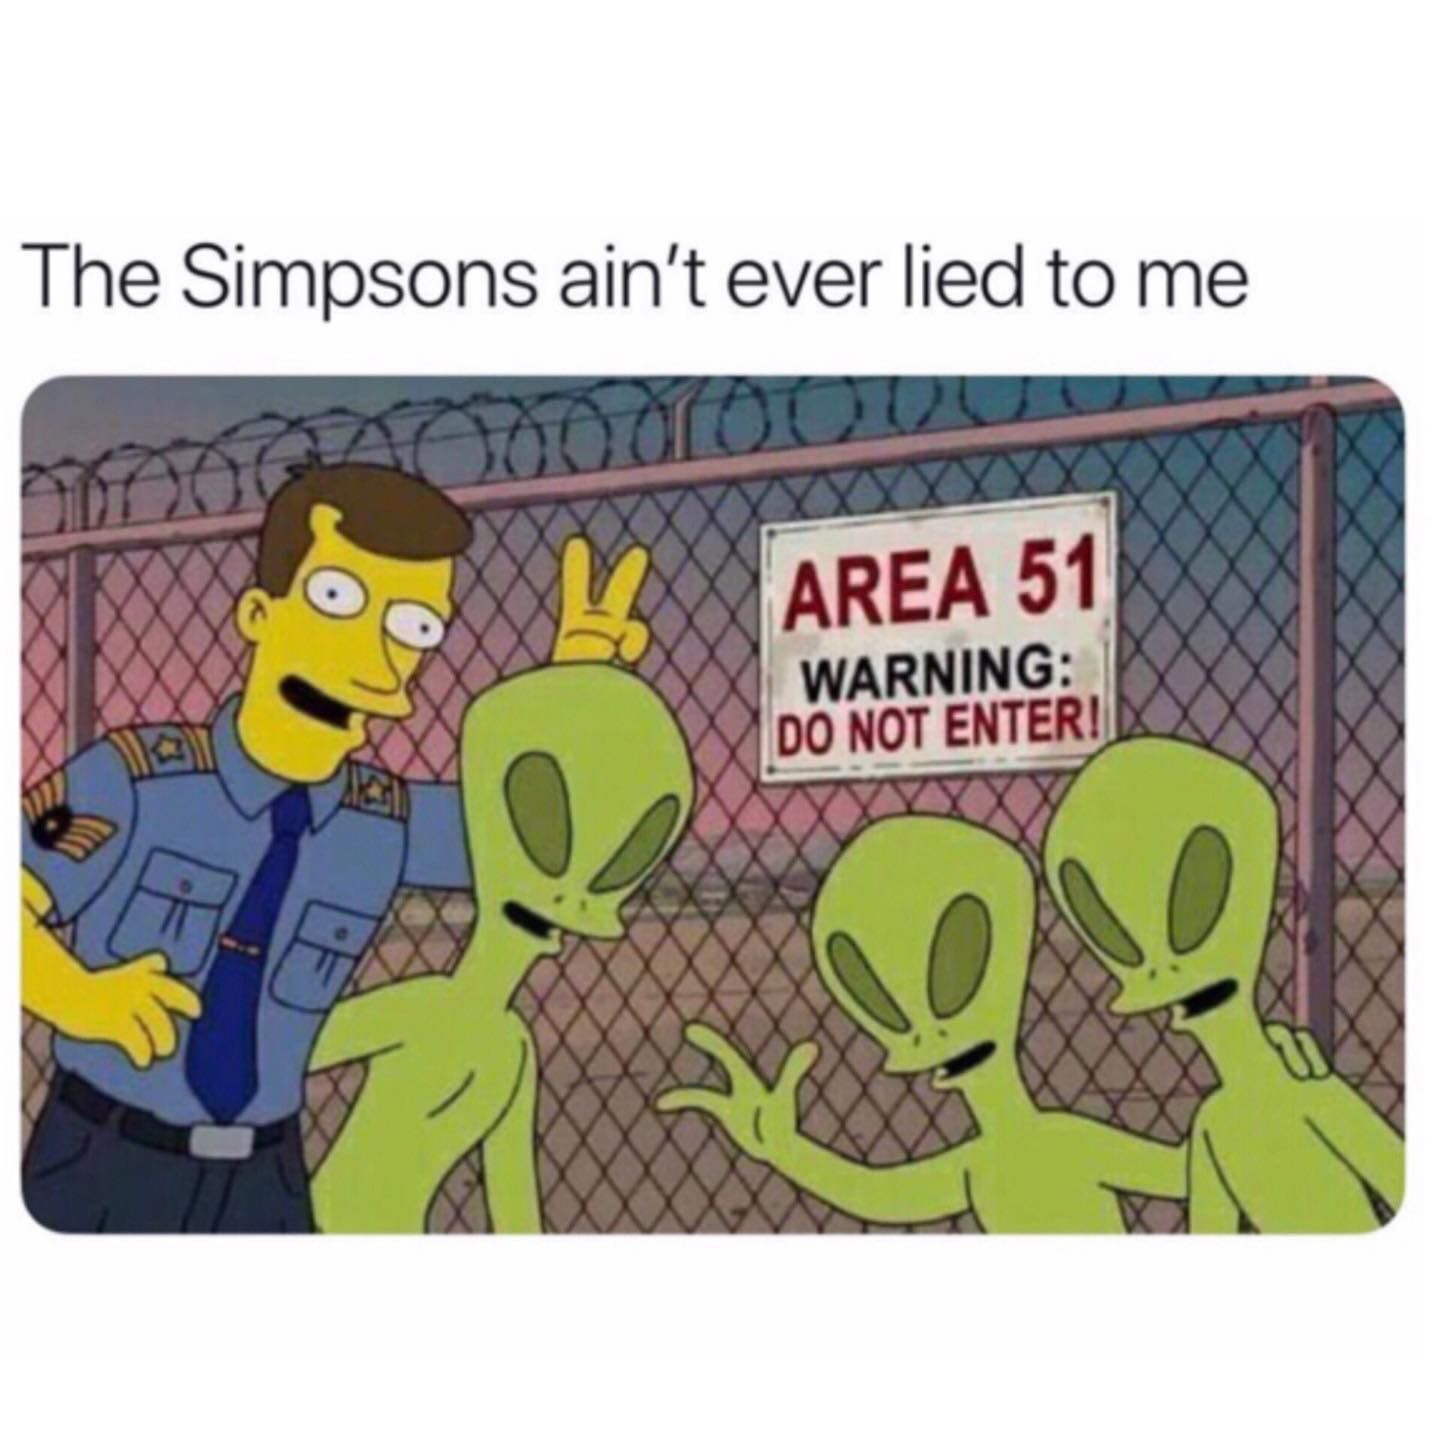 Image may contain: Area 51 memes, Area 51, meme, reaction, twitter, Las Vegas, Nevada, where, origin, explained, what is Area 51, alien, facebook, event, simpsons, guard, Text